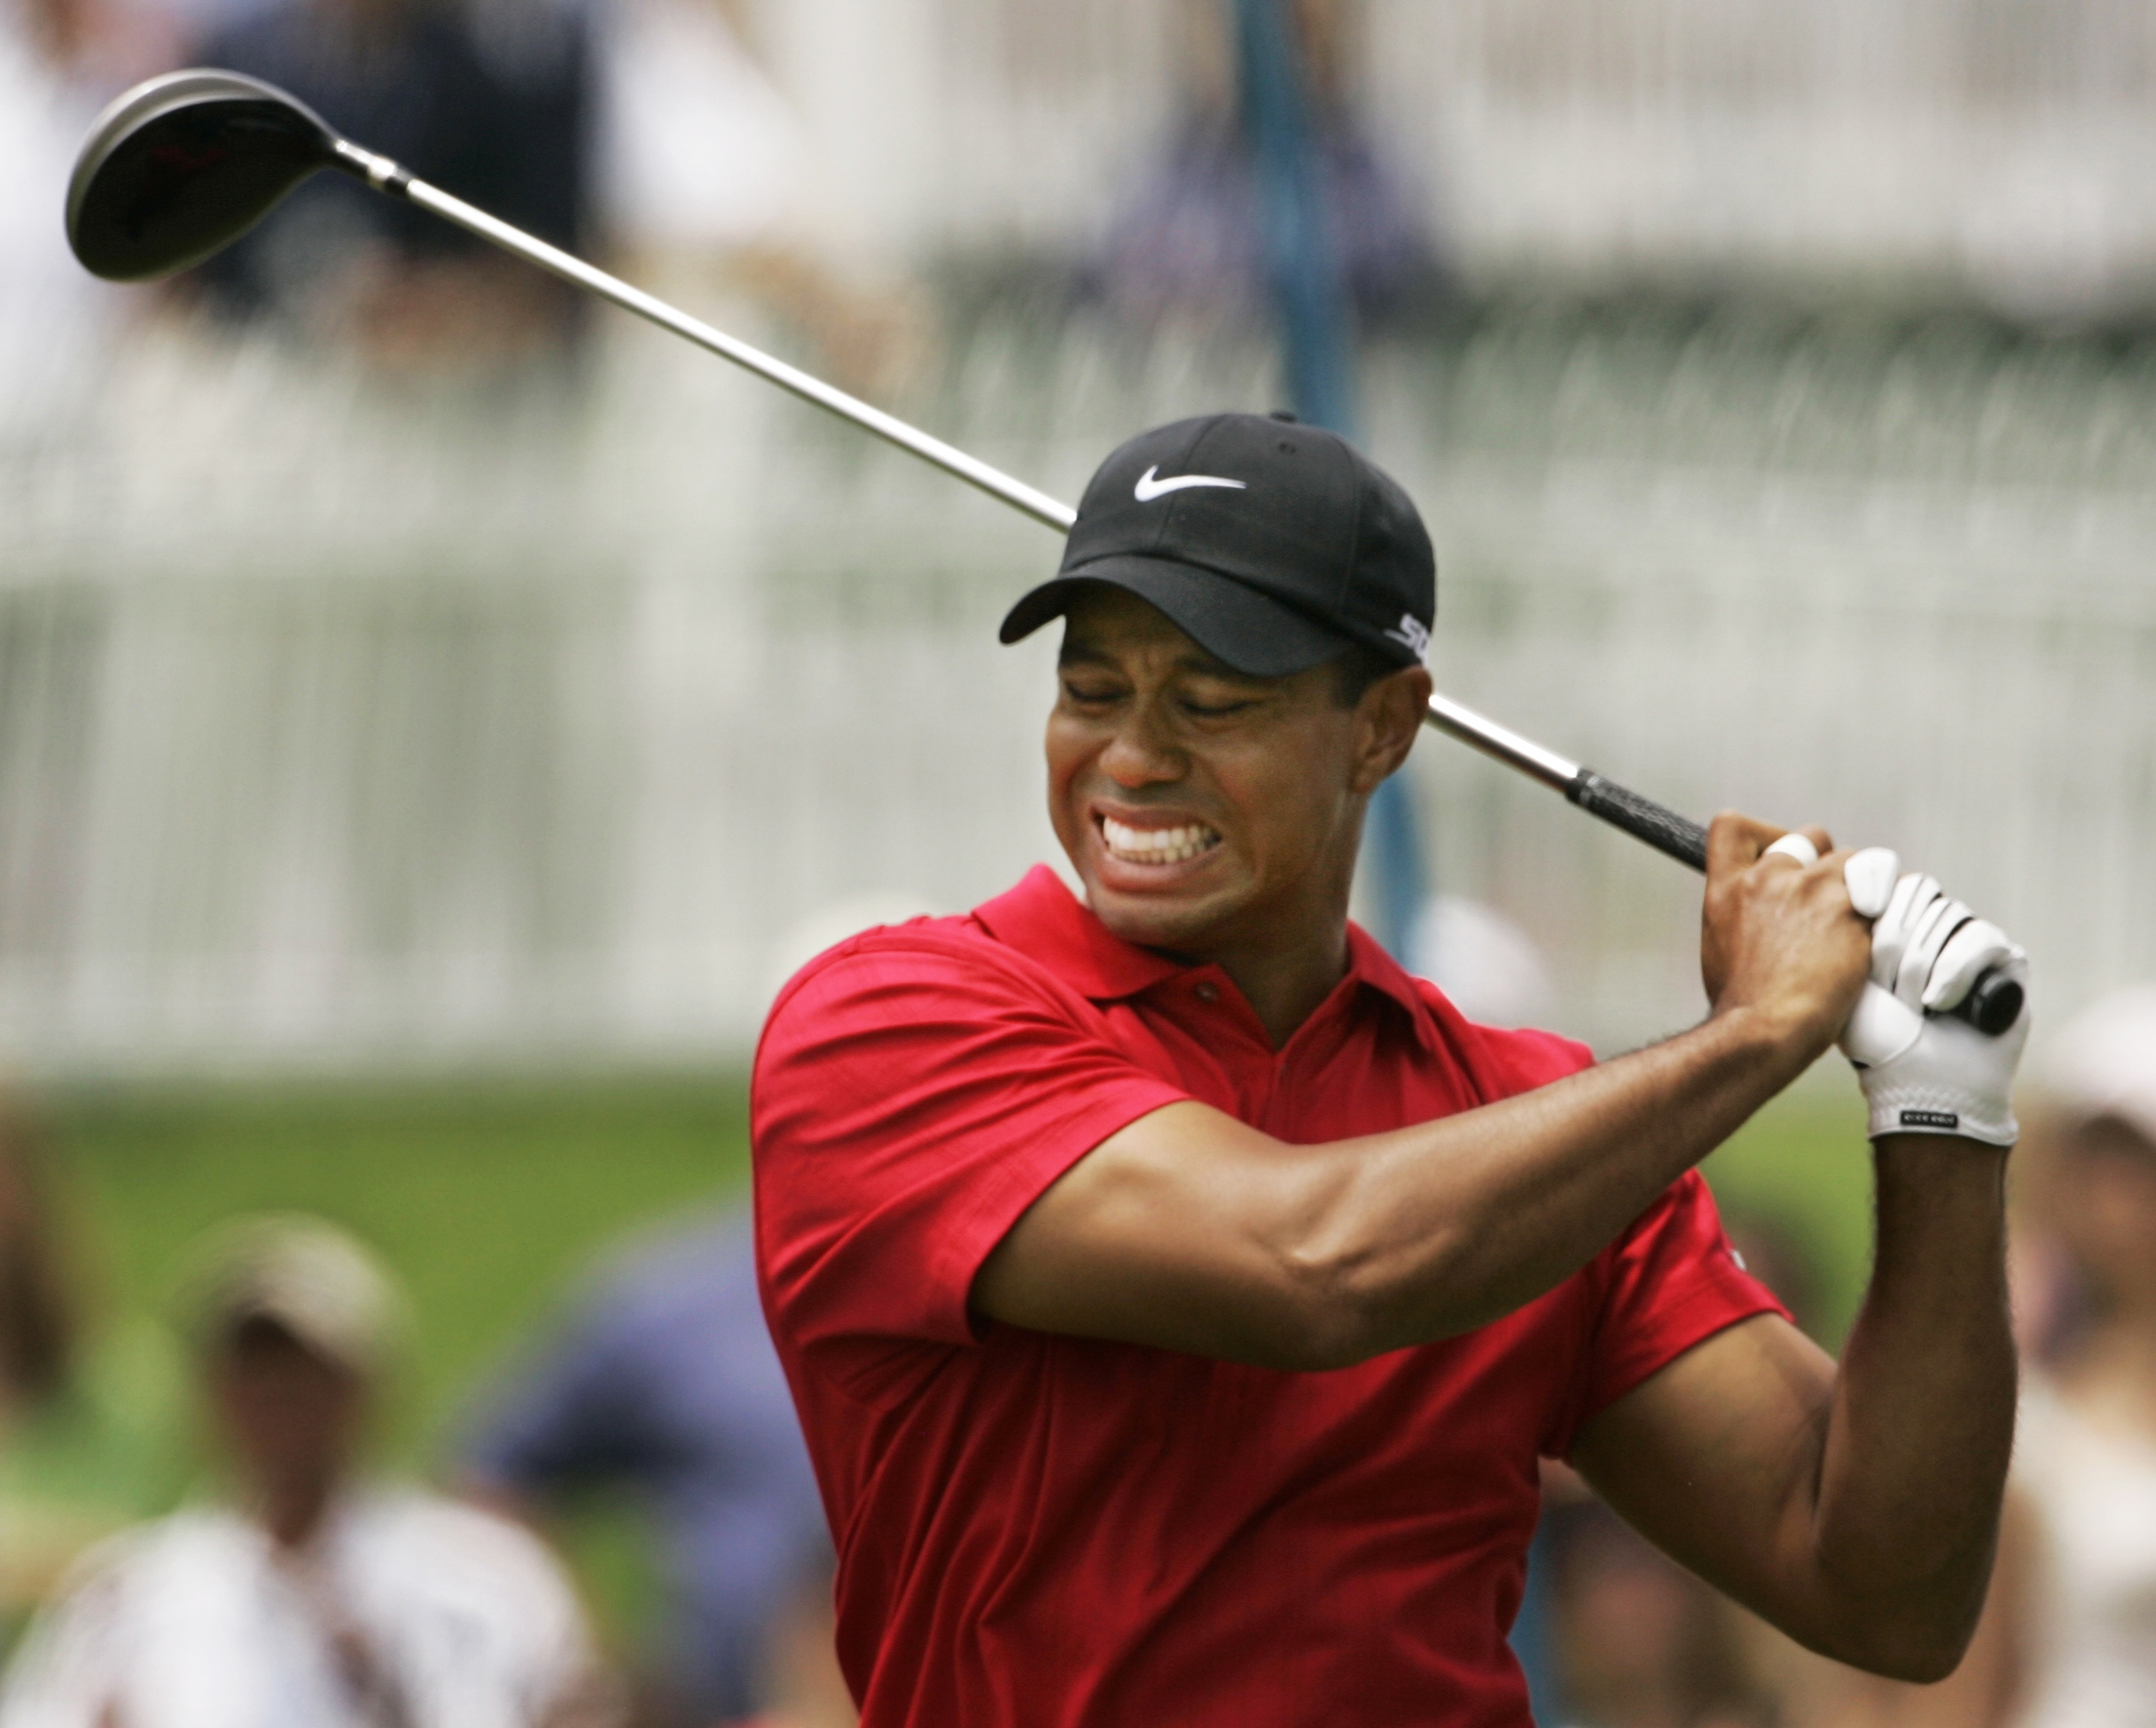 EVEN TIGER HAS SUFFERED FROM BACK PAIN DURING HIS GOLF CAREER